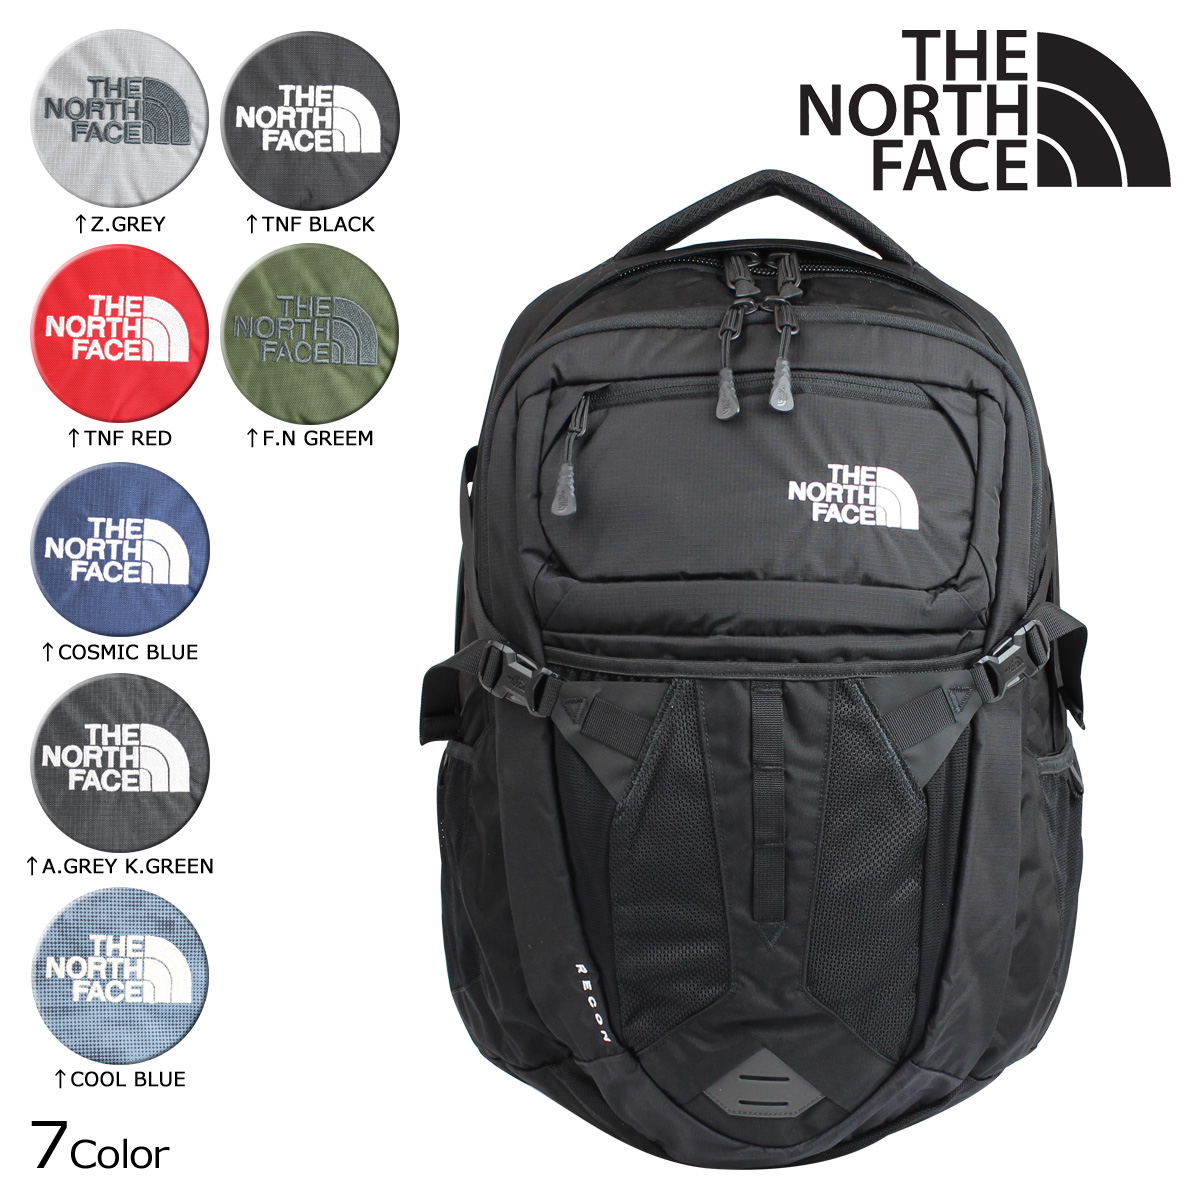 d0e4e999f North Face THE NORTH FACE rucksack backpack RECON BACKPACK 31L men's Lady's